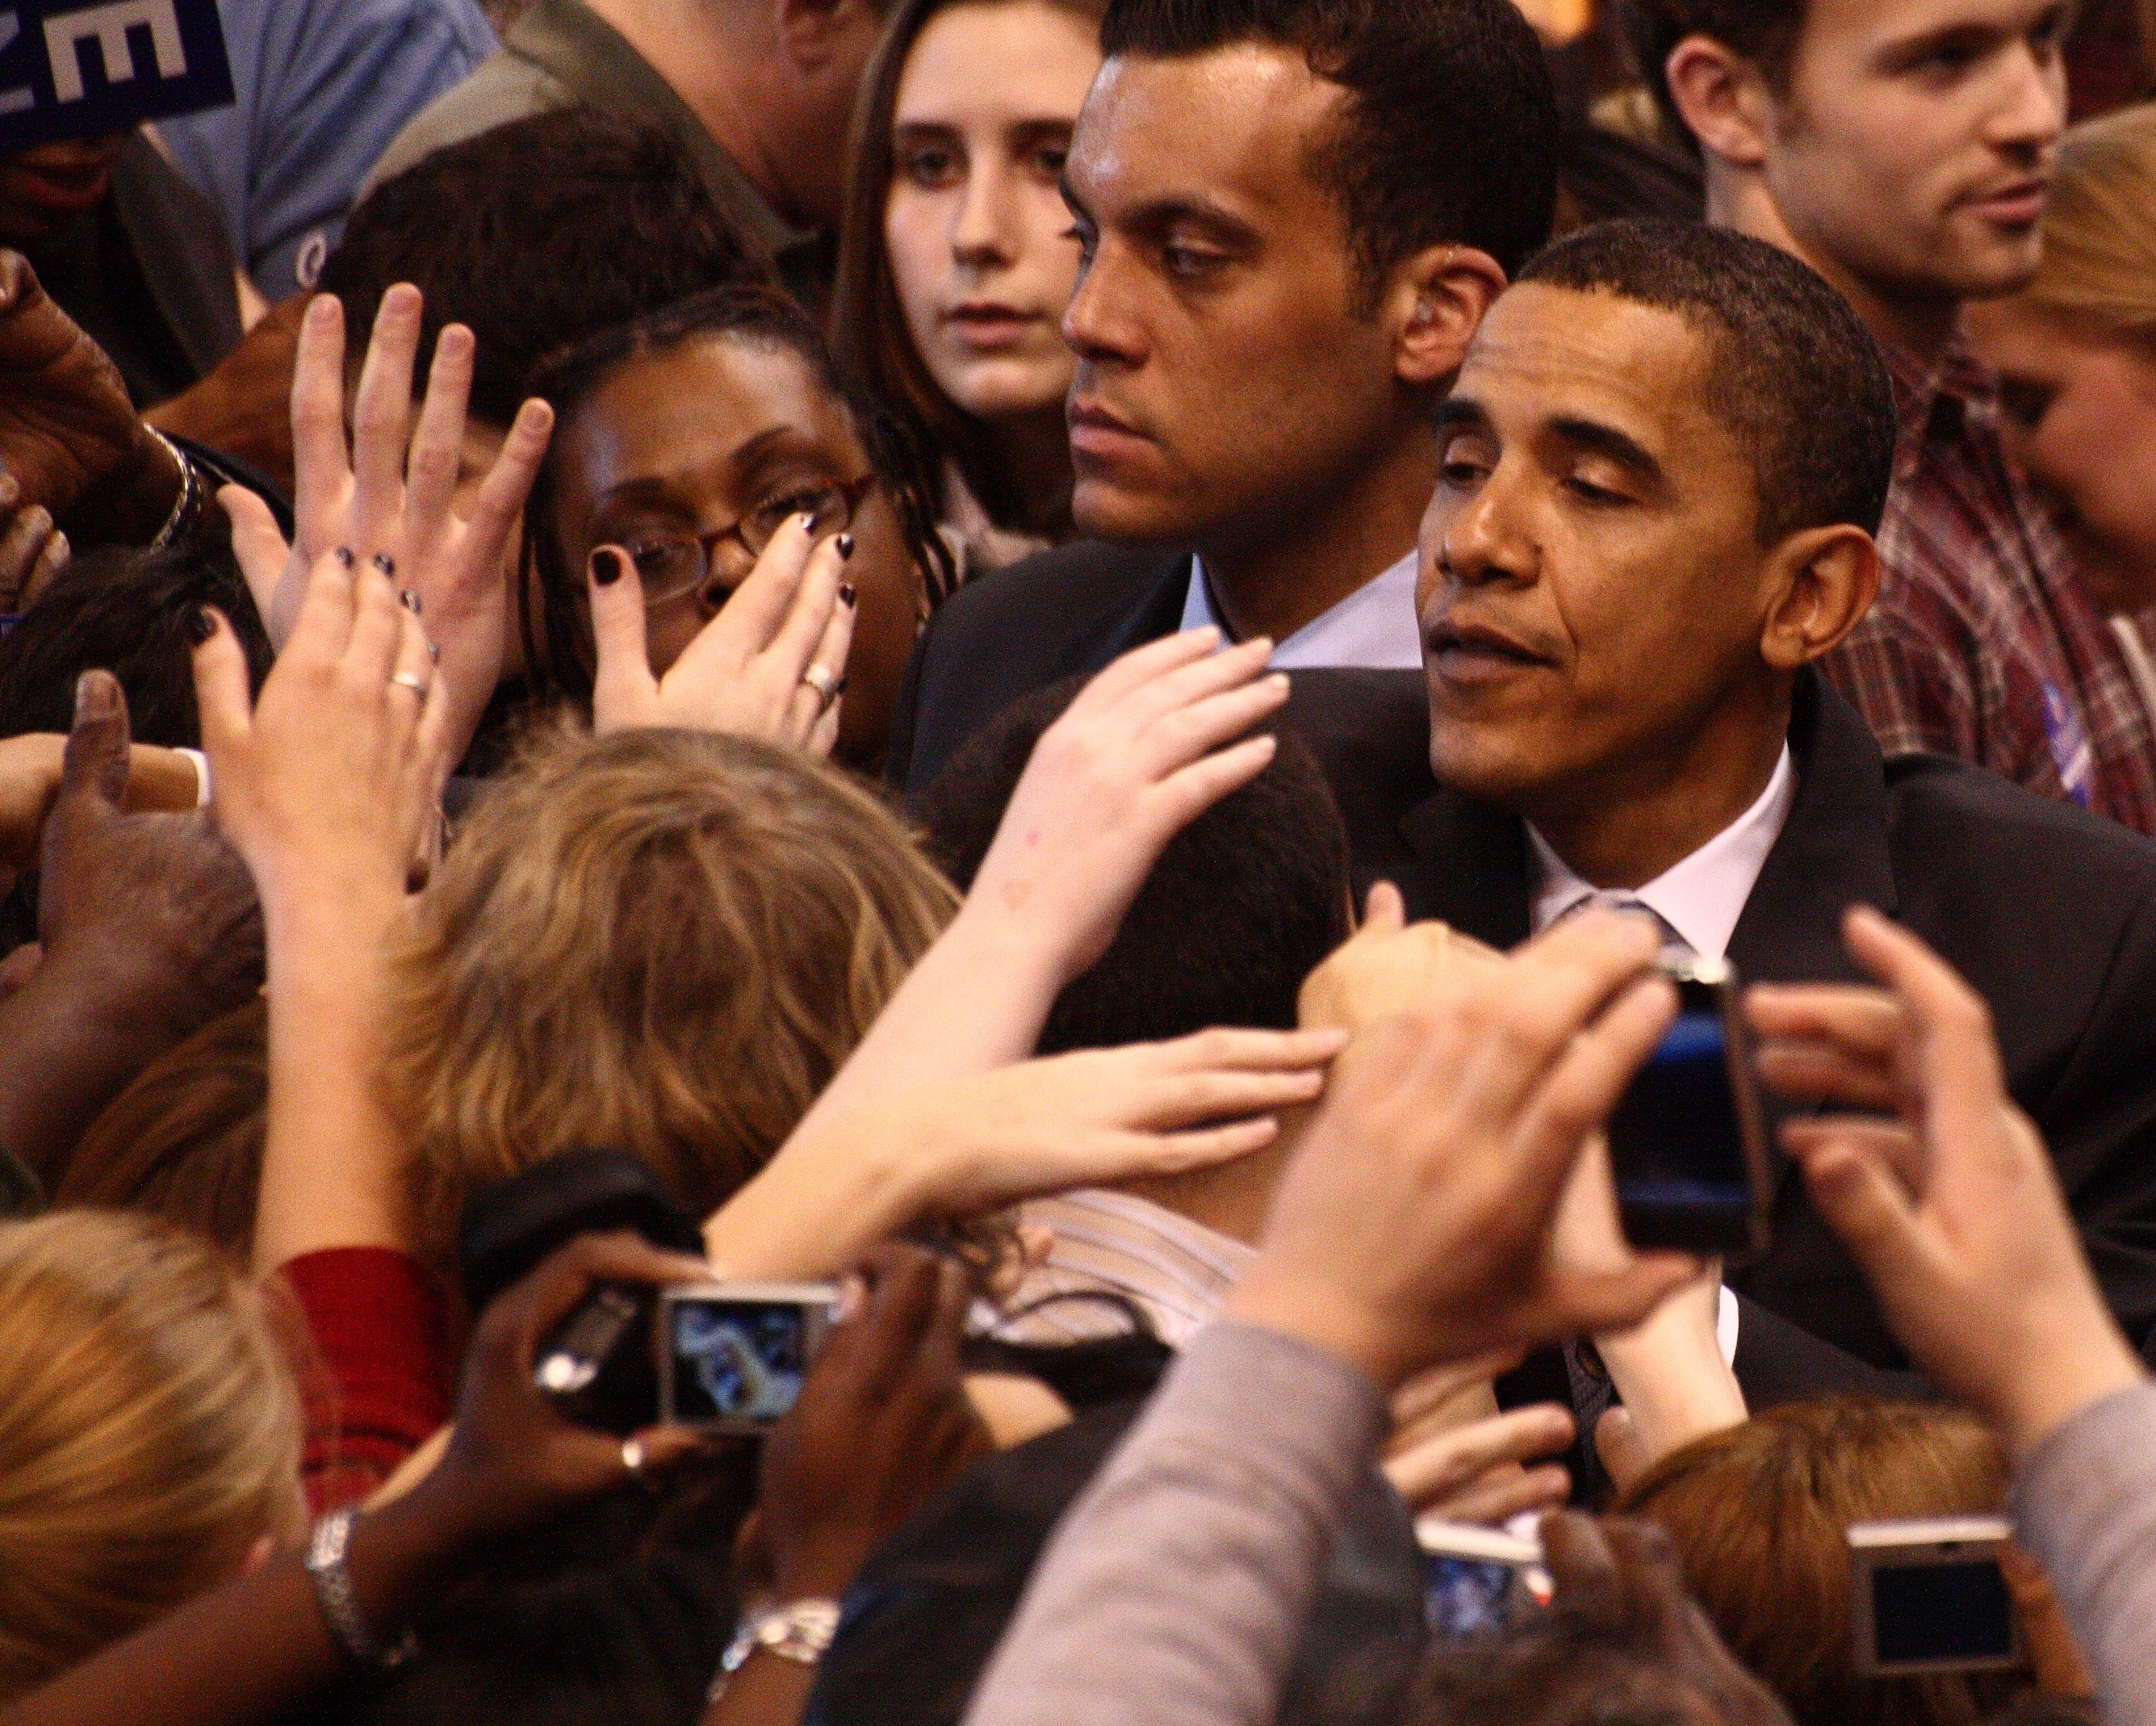 http://upload.wikimedia.org/wikipedia/commons/b/b2/Barack_Obama_and_supporters,_February_4,_2008.jpg